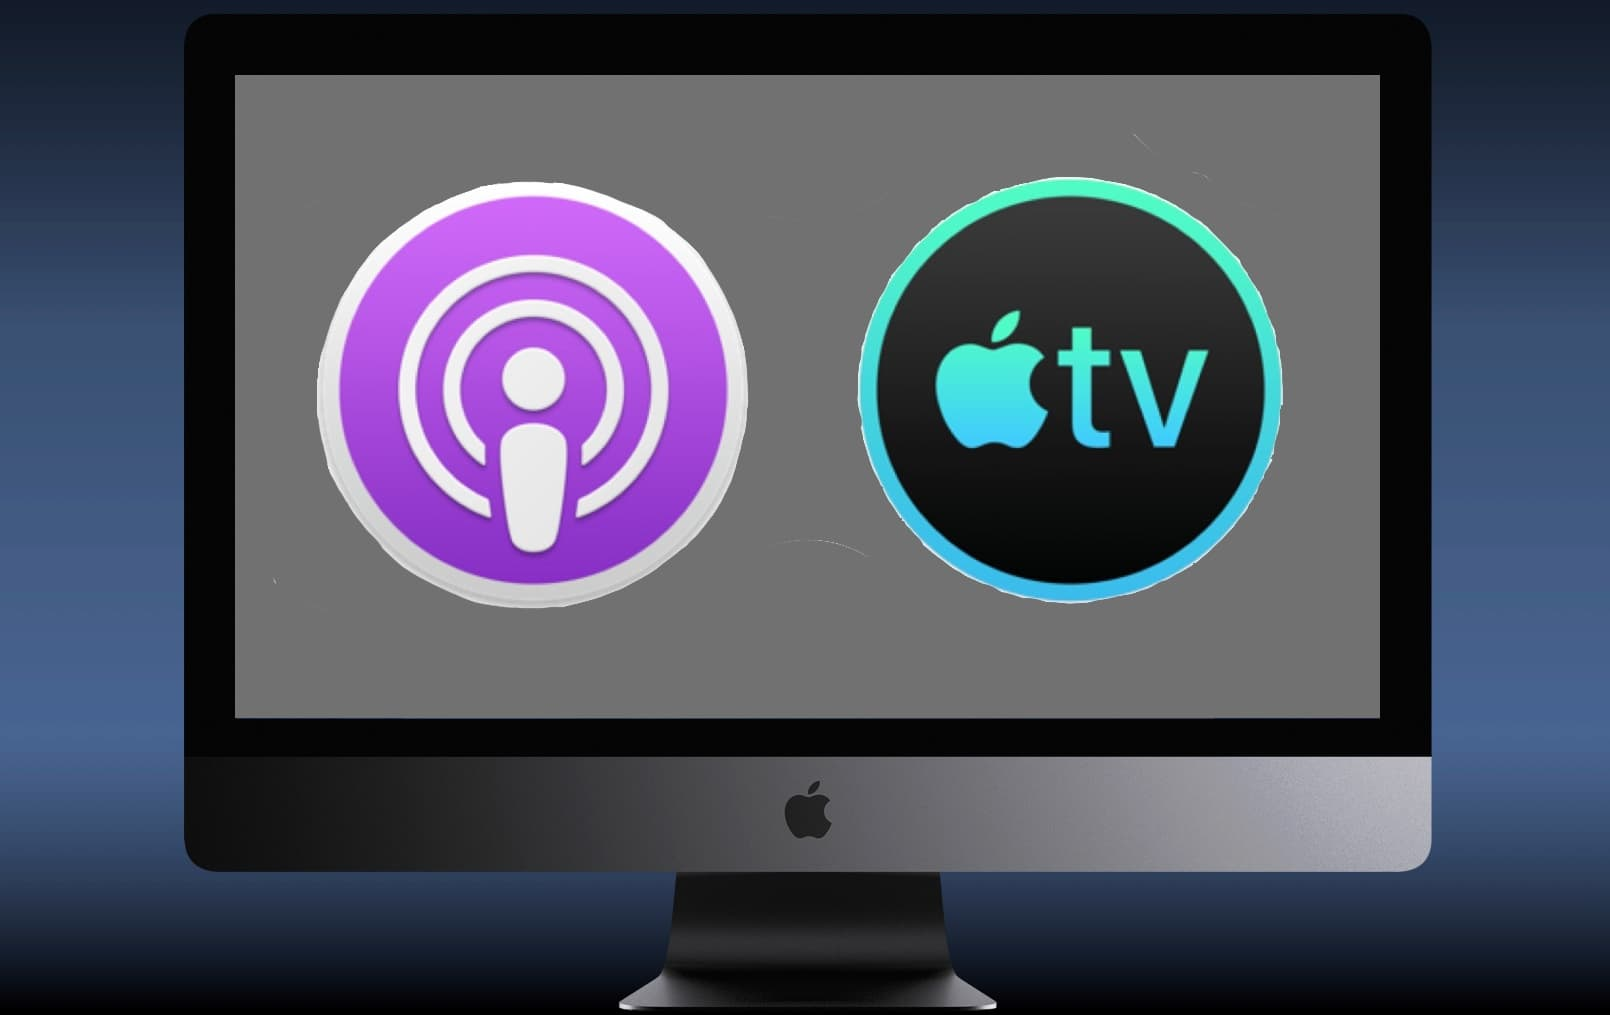 Podcasts and Apple TV are among the applications expected to make the jump from iOS to macOS 10.15.